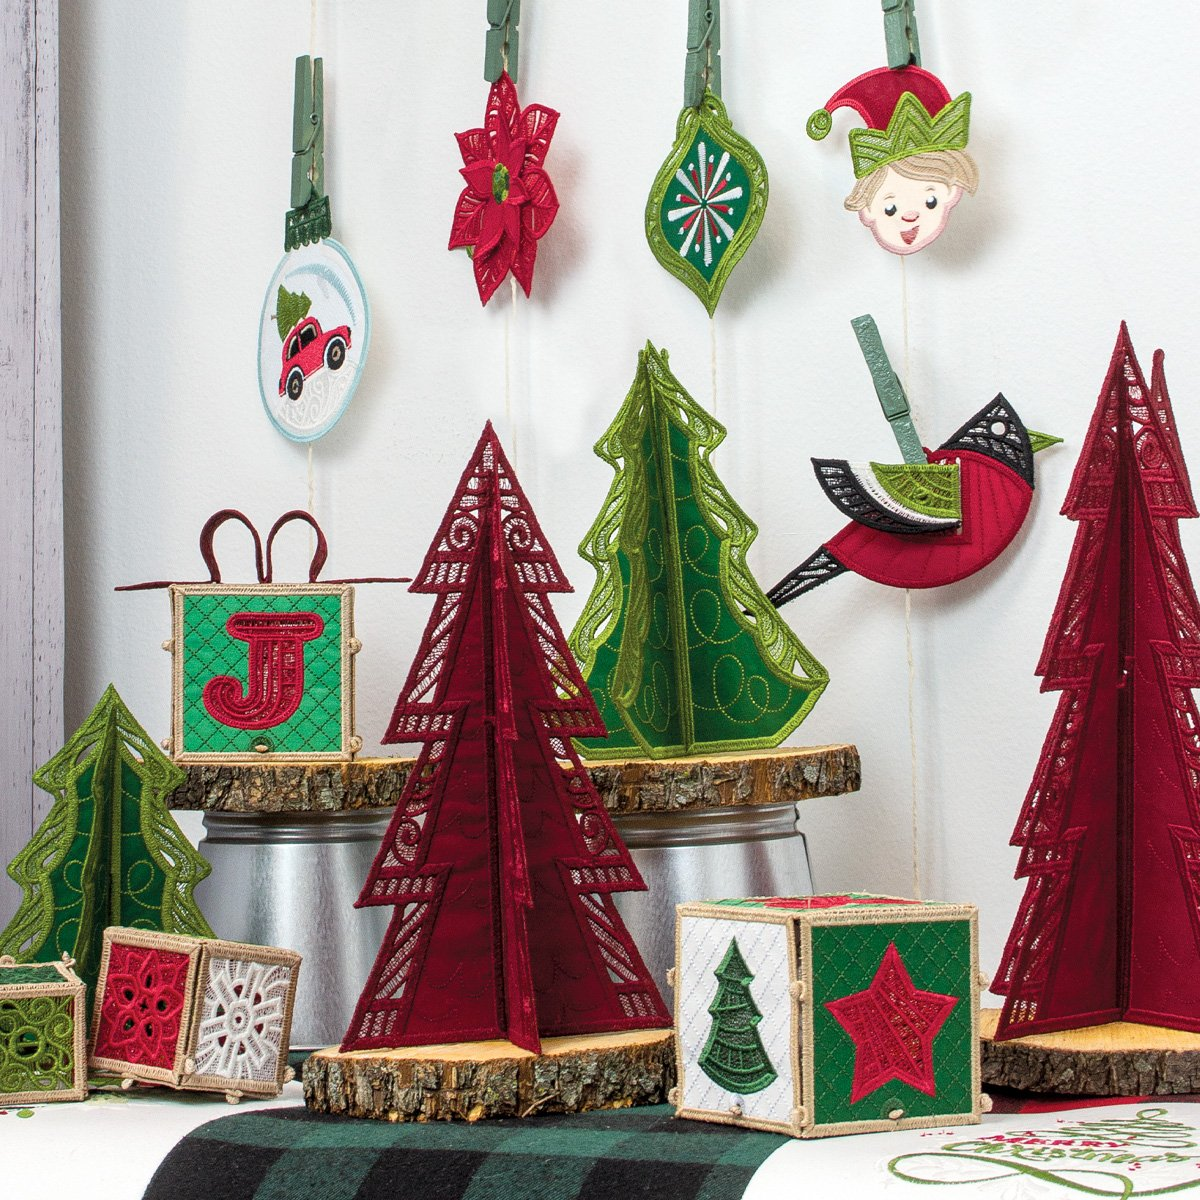 Holly Jolly Ornaments and Accents